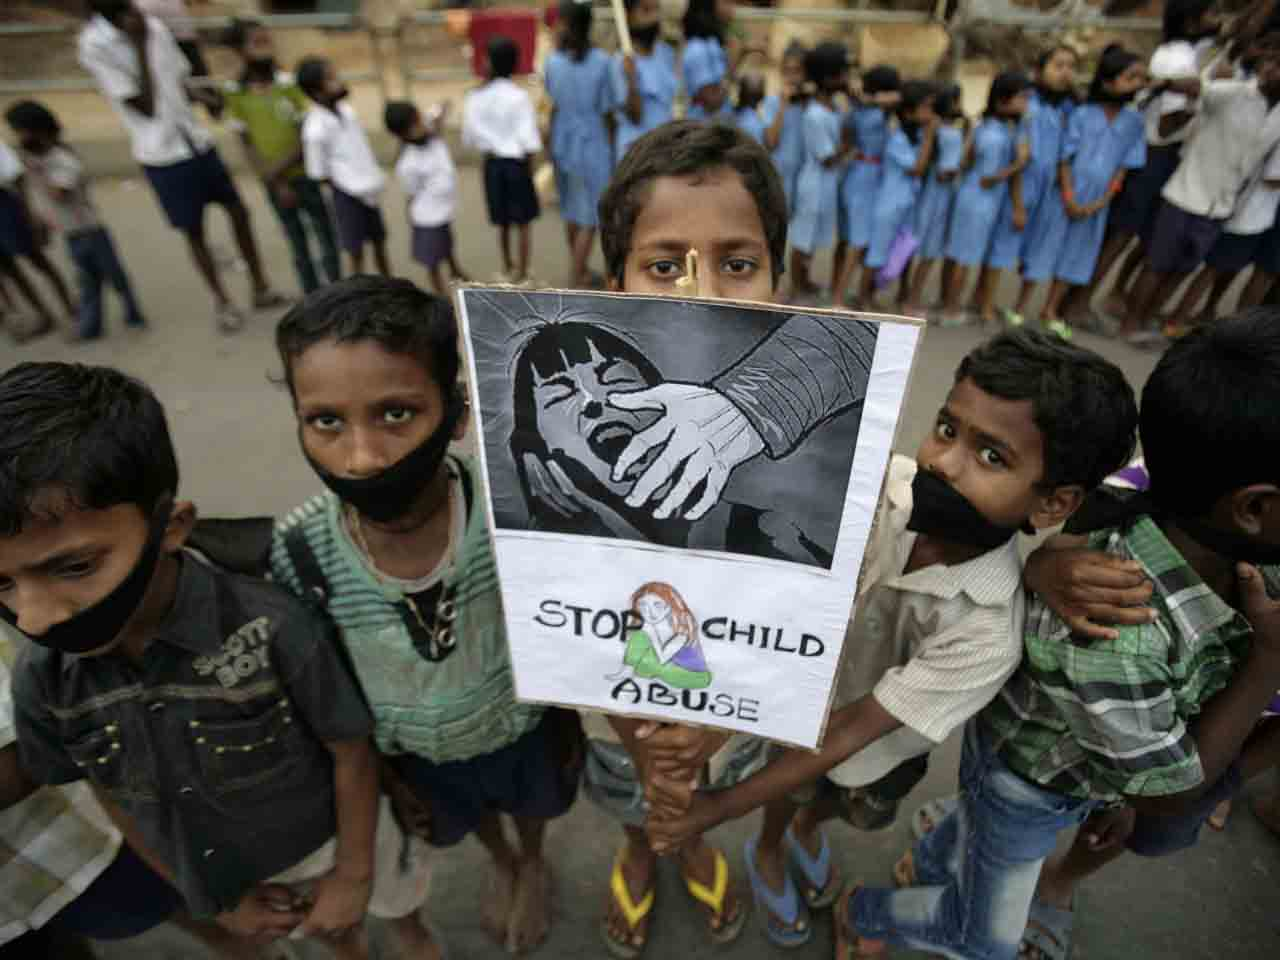 Rape of young children sparks outrage in India